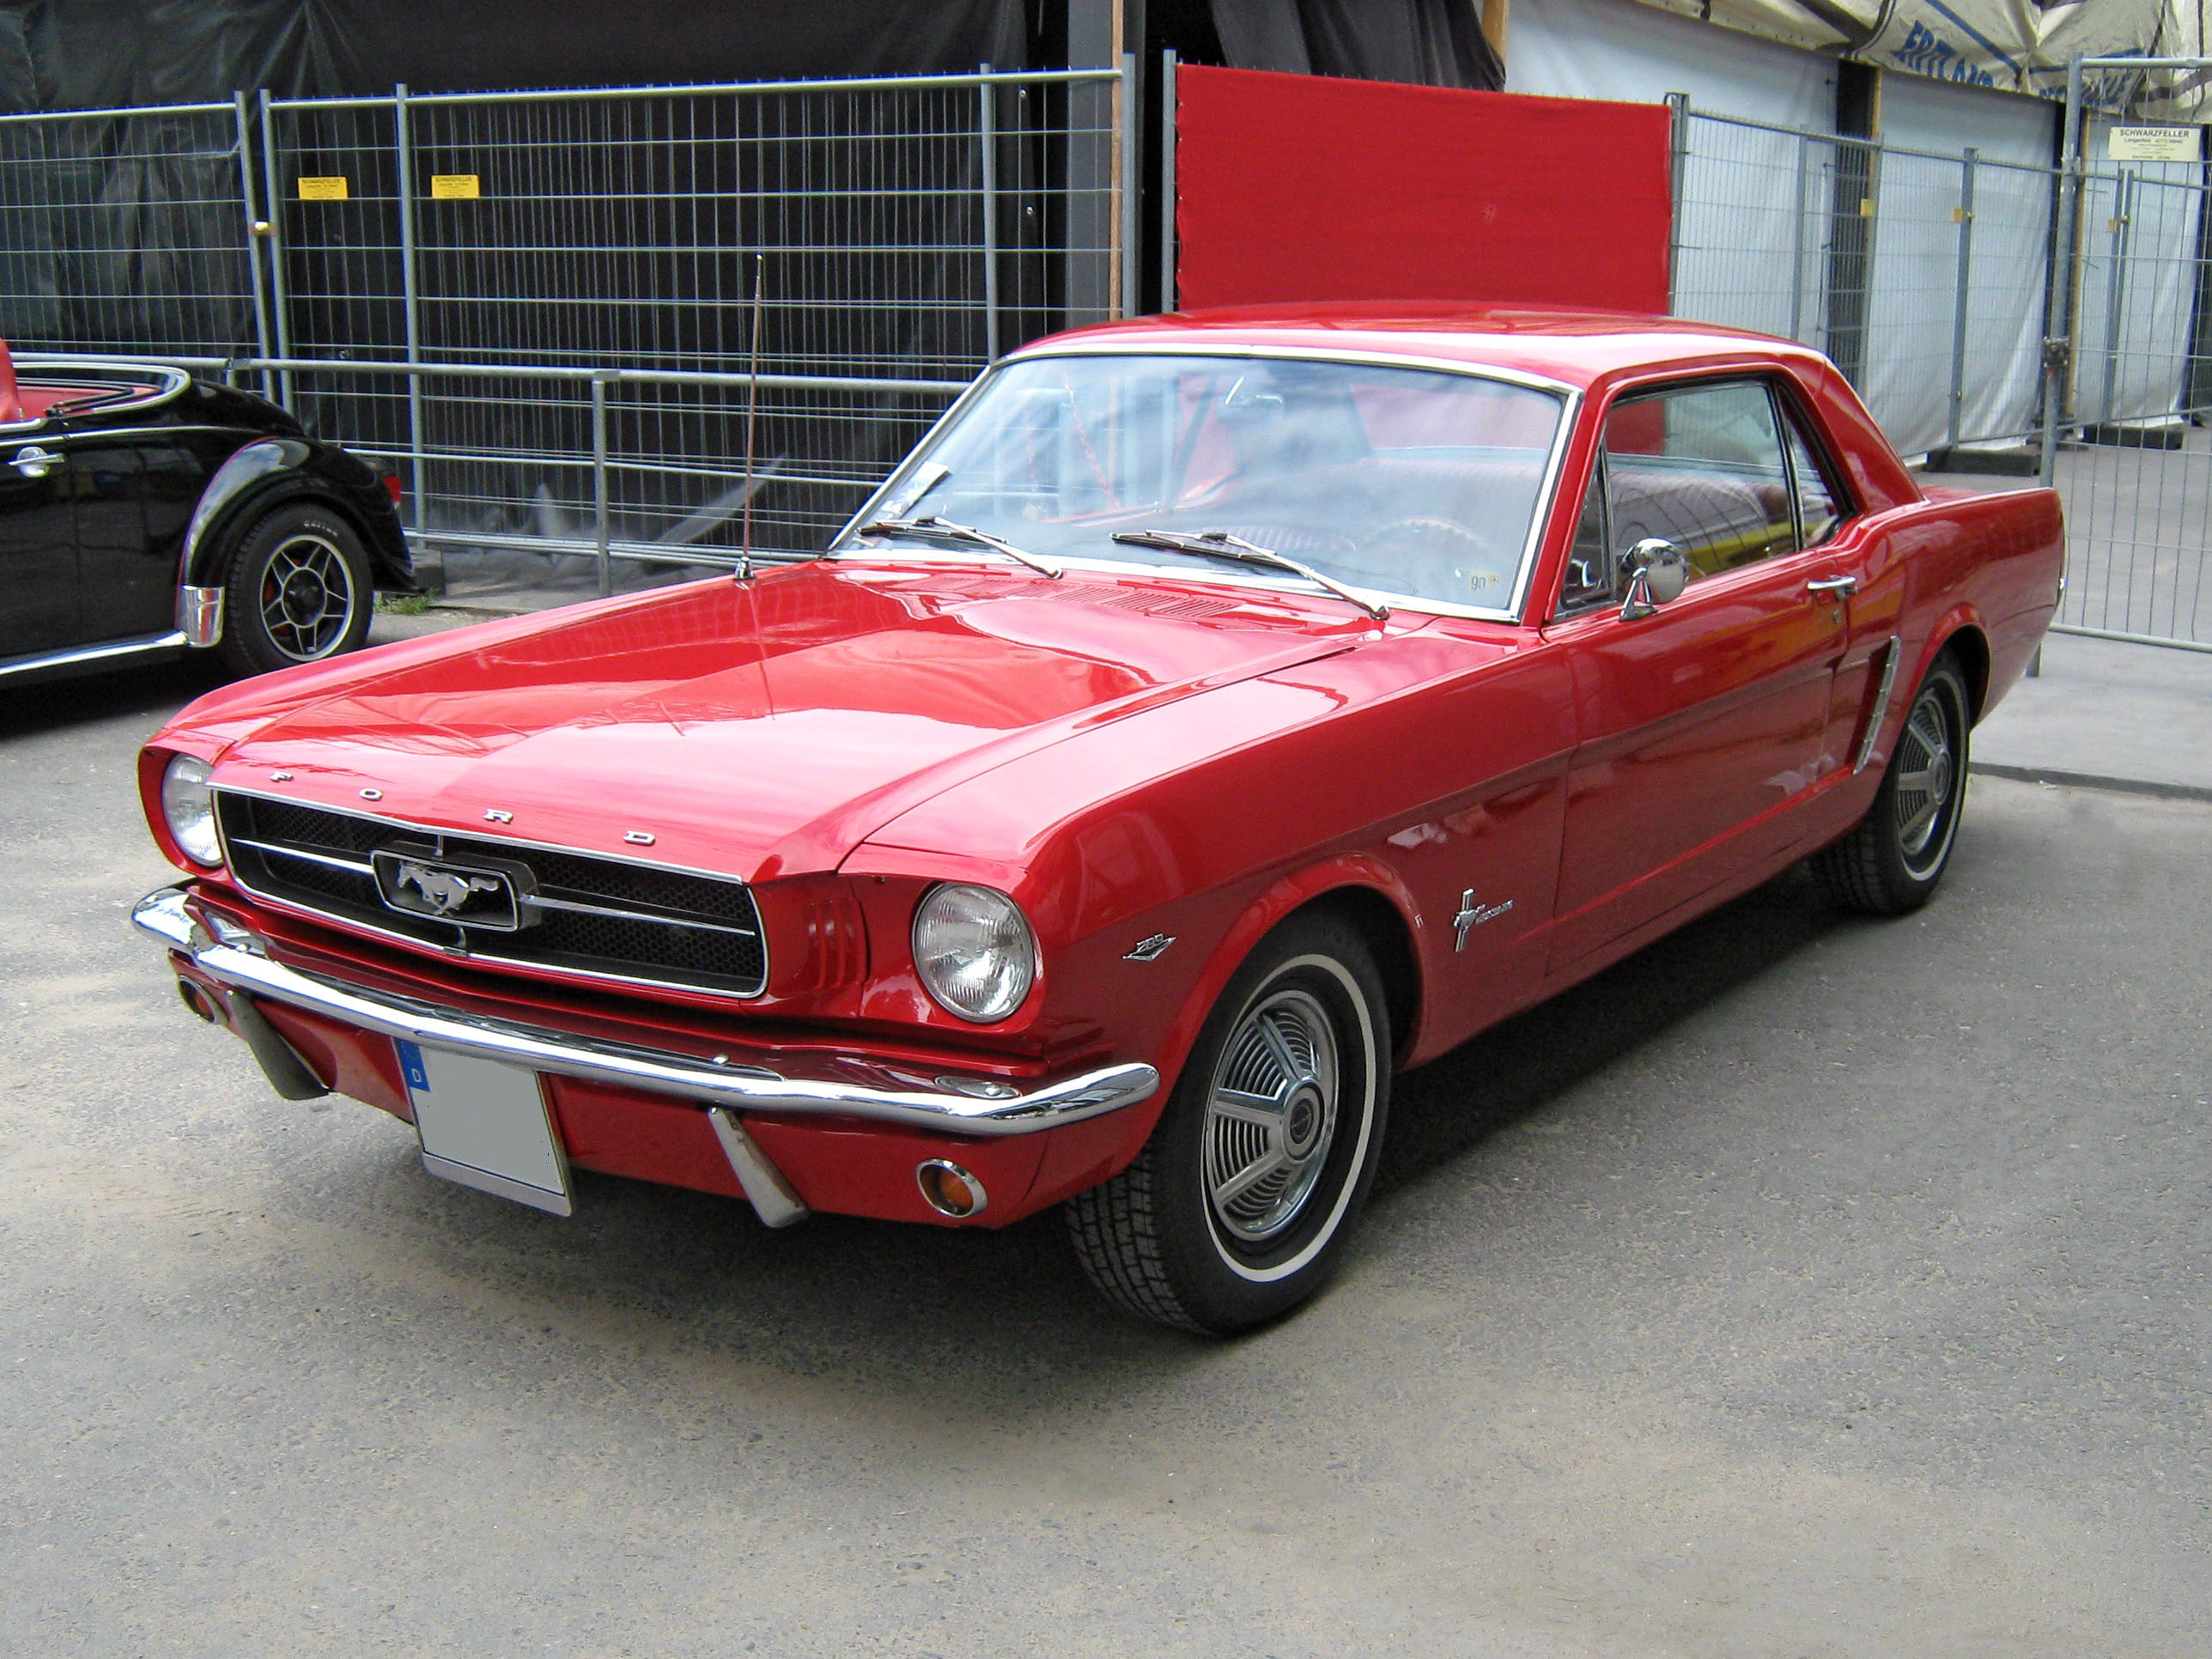 Mustang parts deals on sale